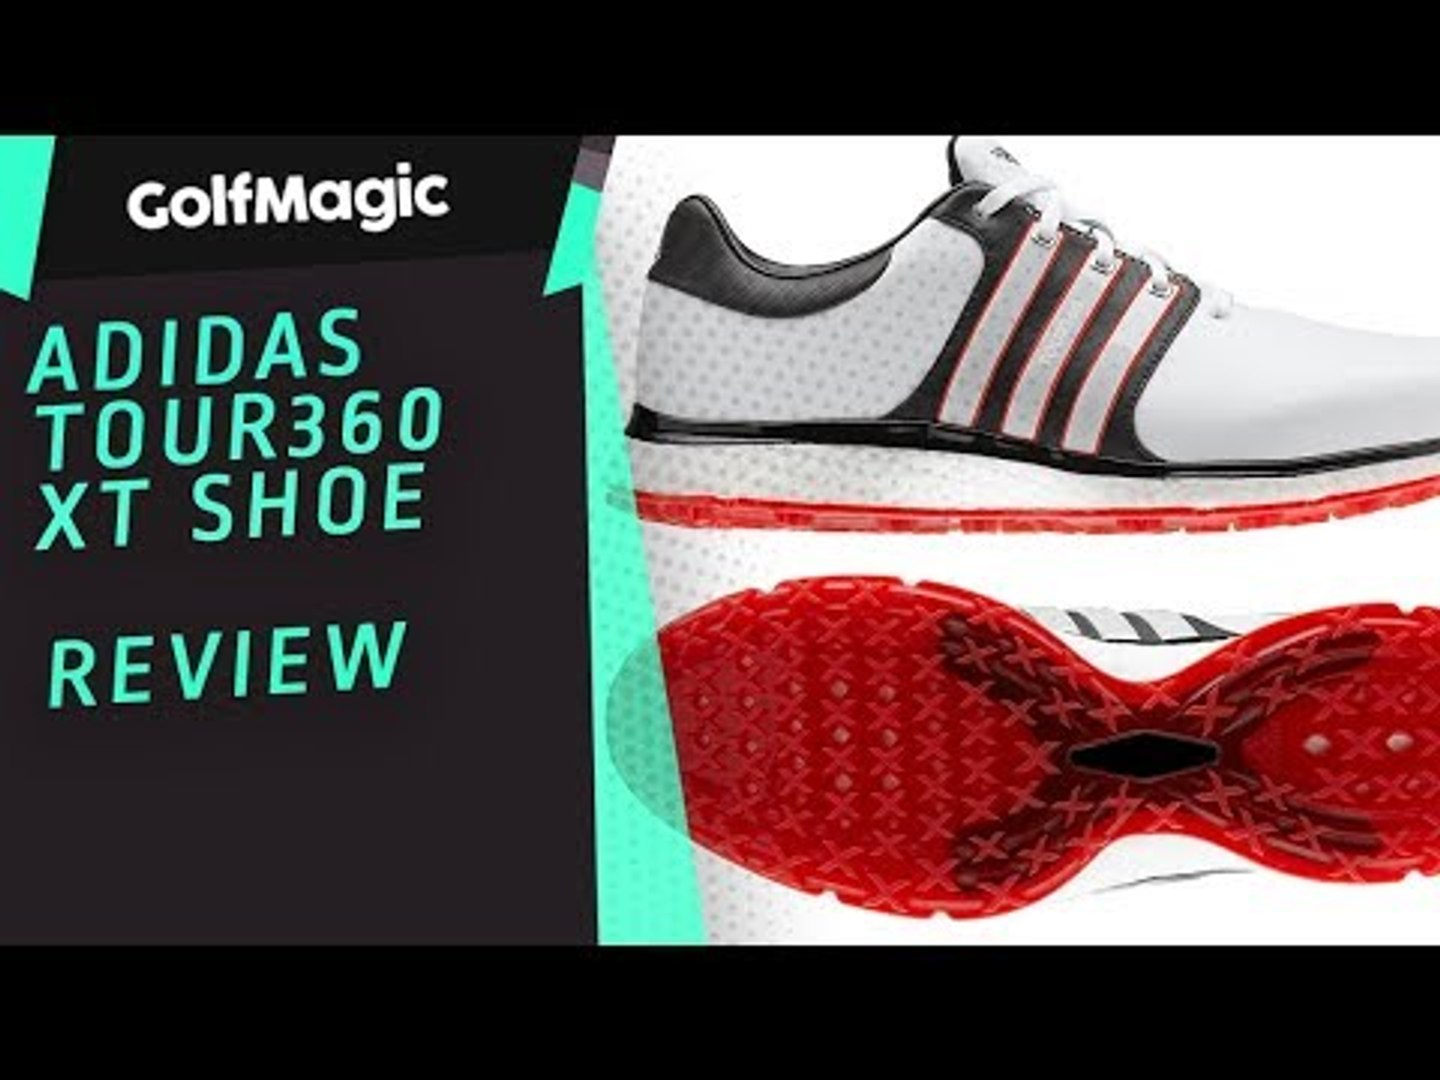 adidas Golf Tour360 XT SL shoe review as worn by Dustin Johnson in 2019